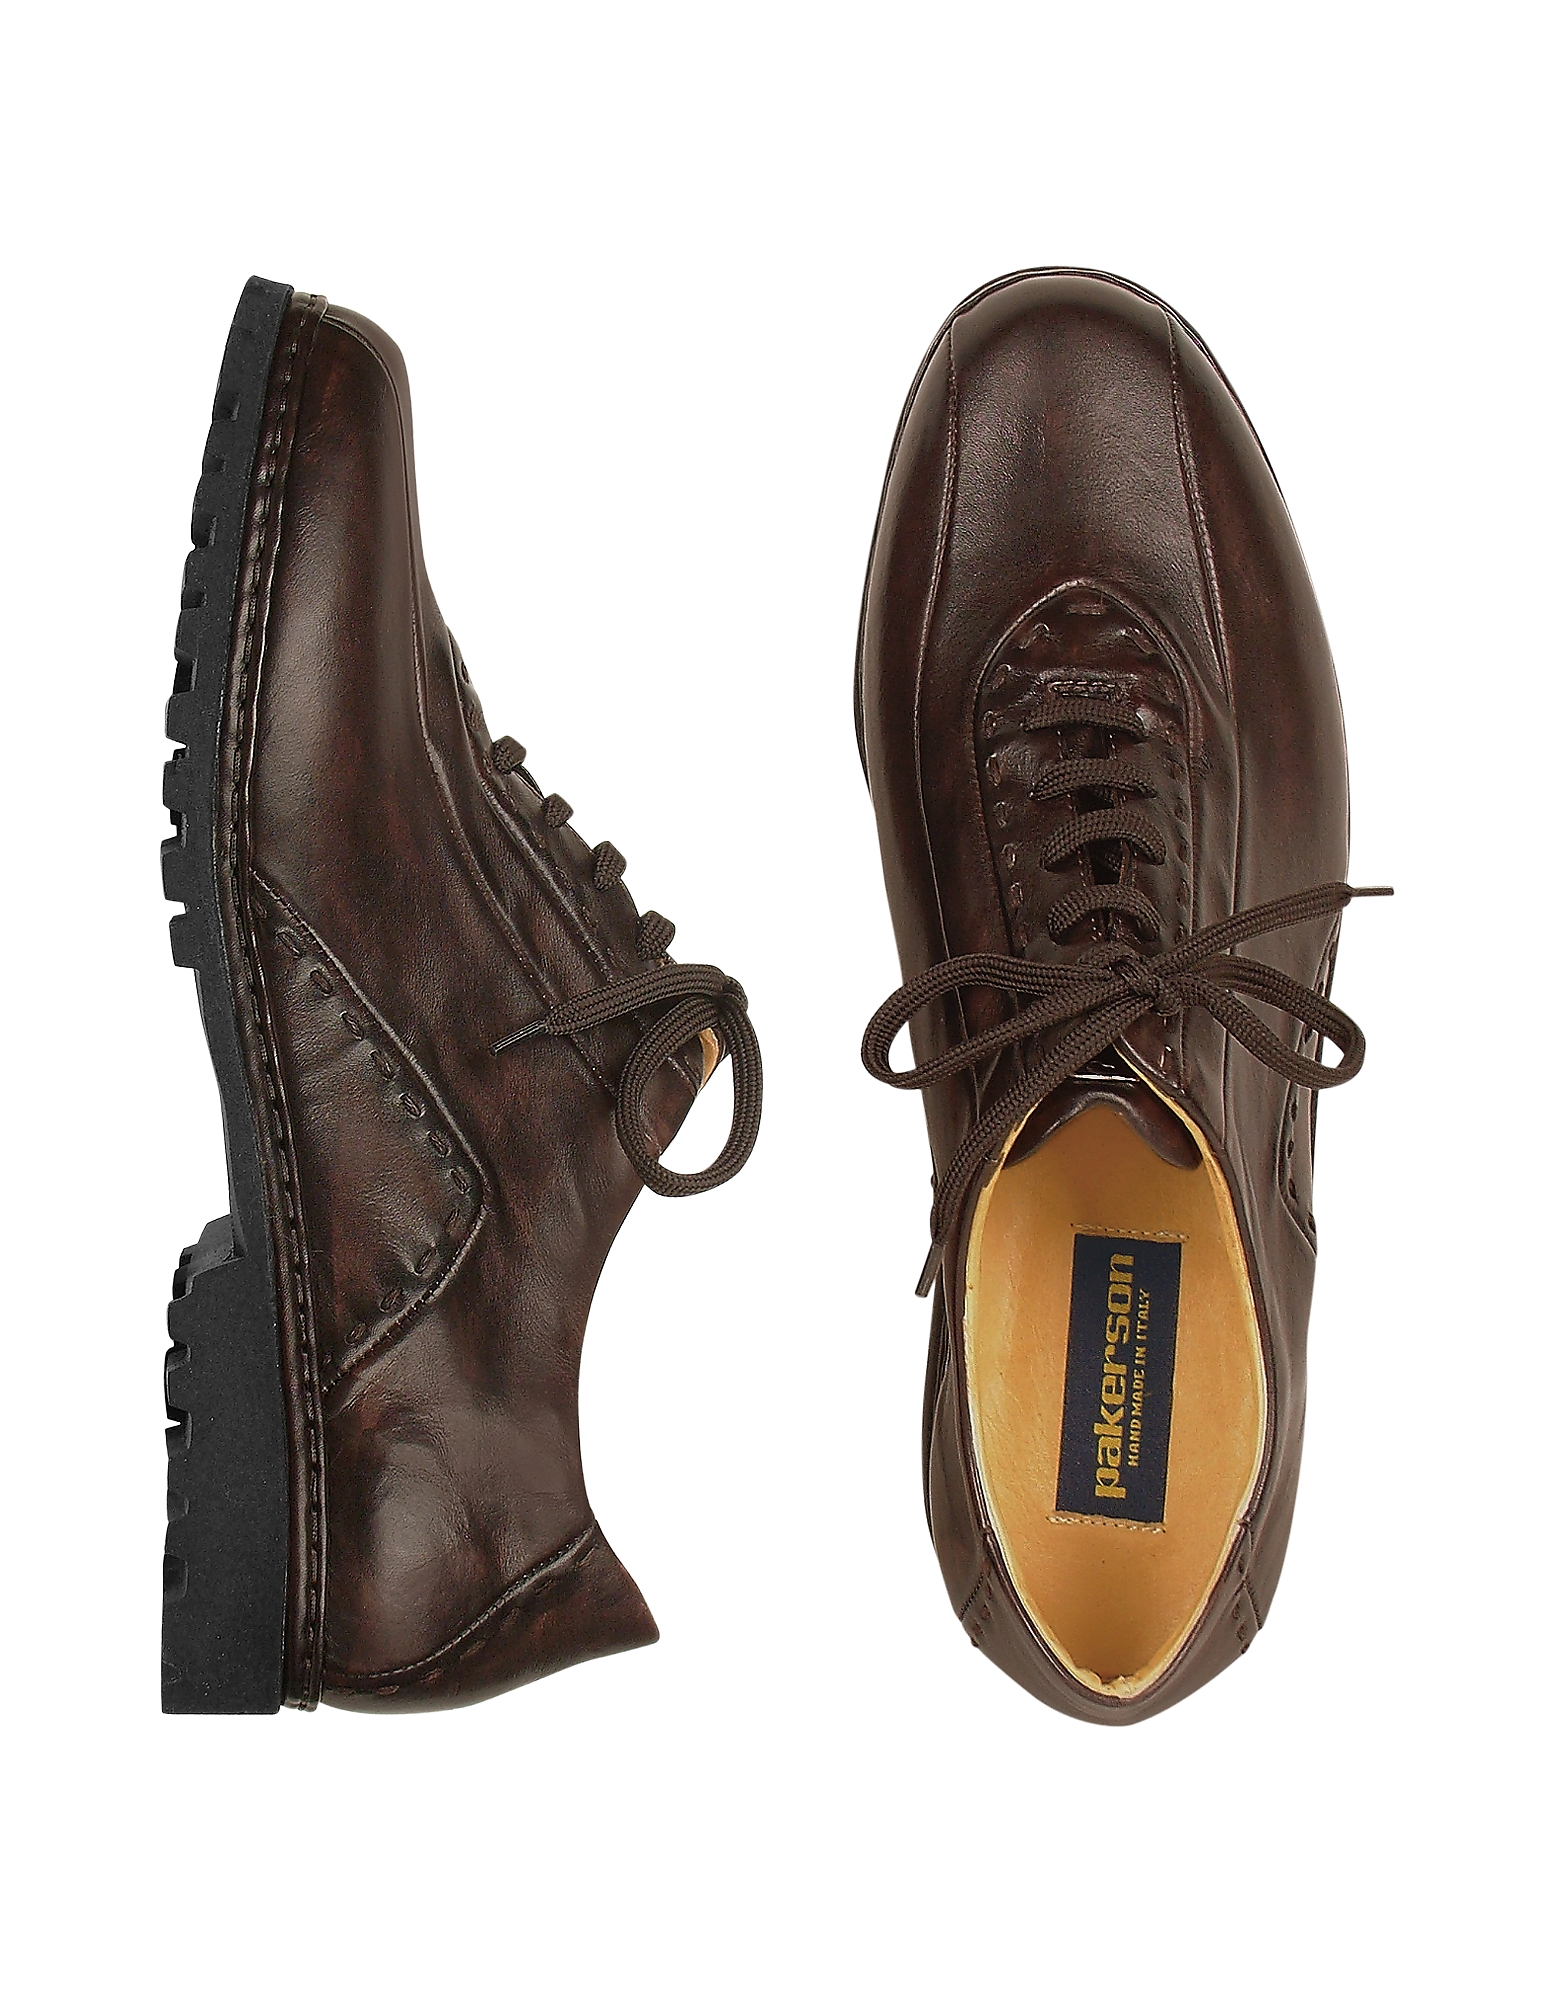 Pakerson Shoes, Dark Brown Italian Handmade Leather Lace-up Shoes